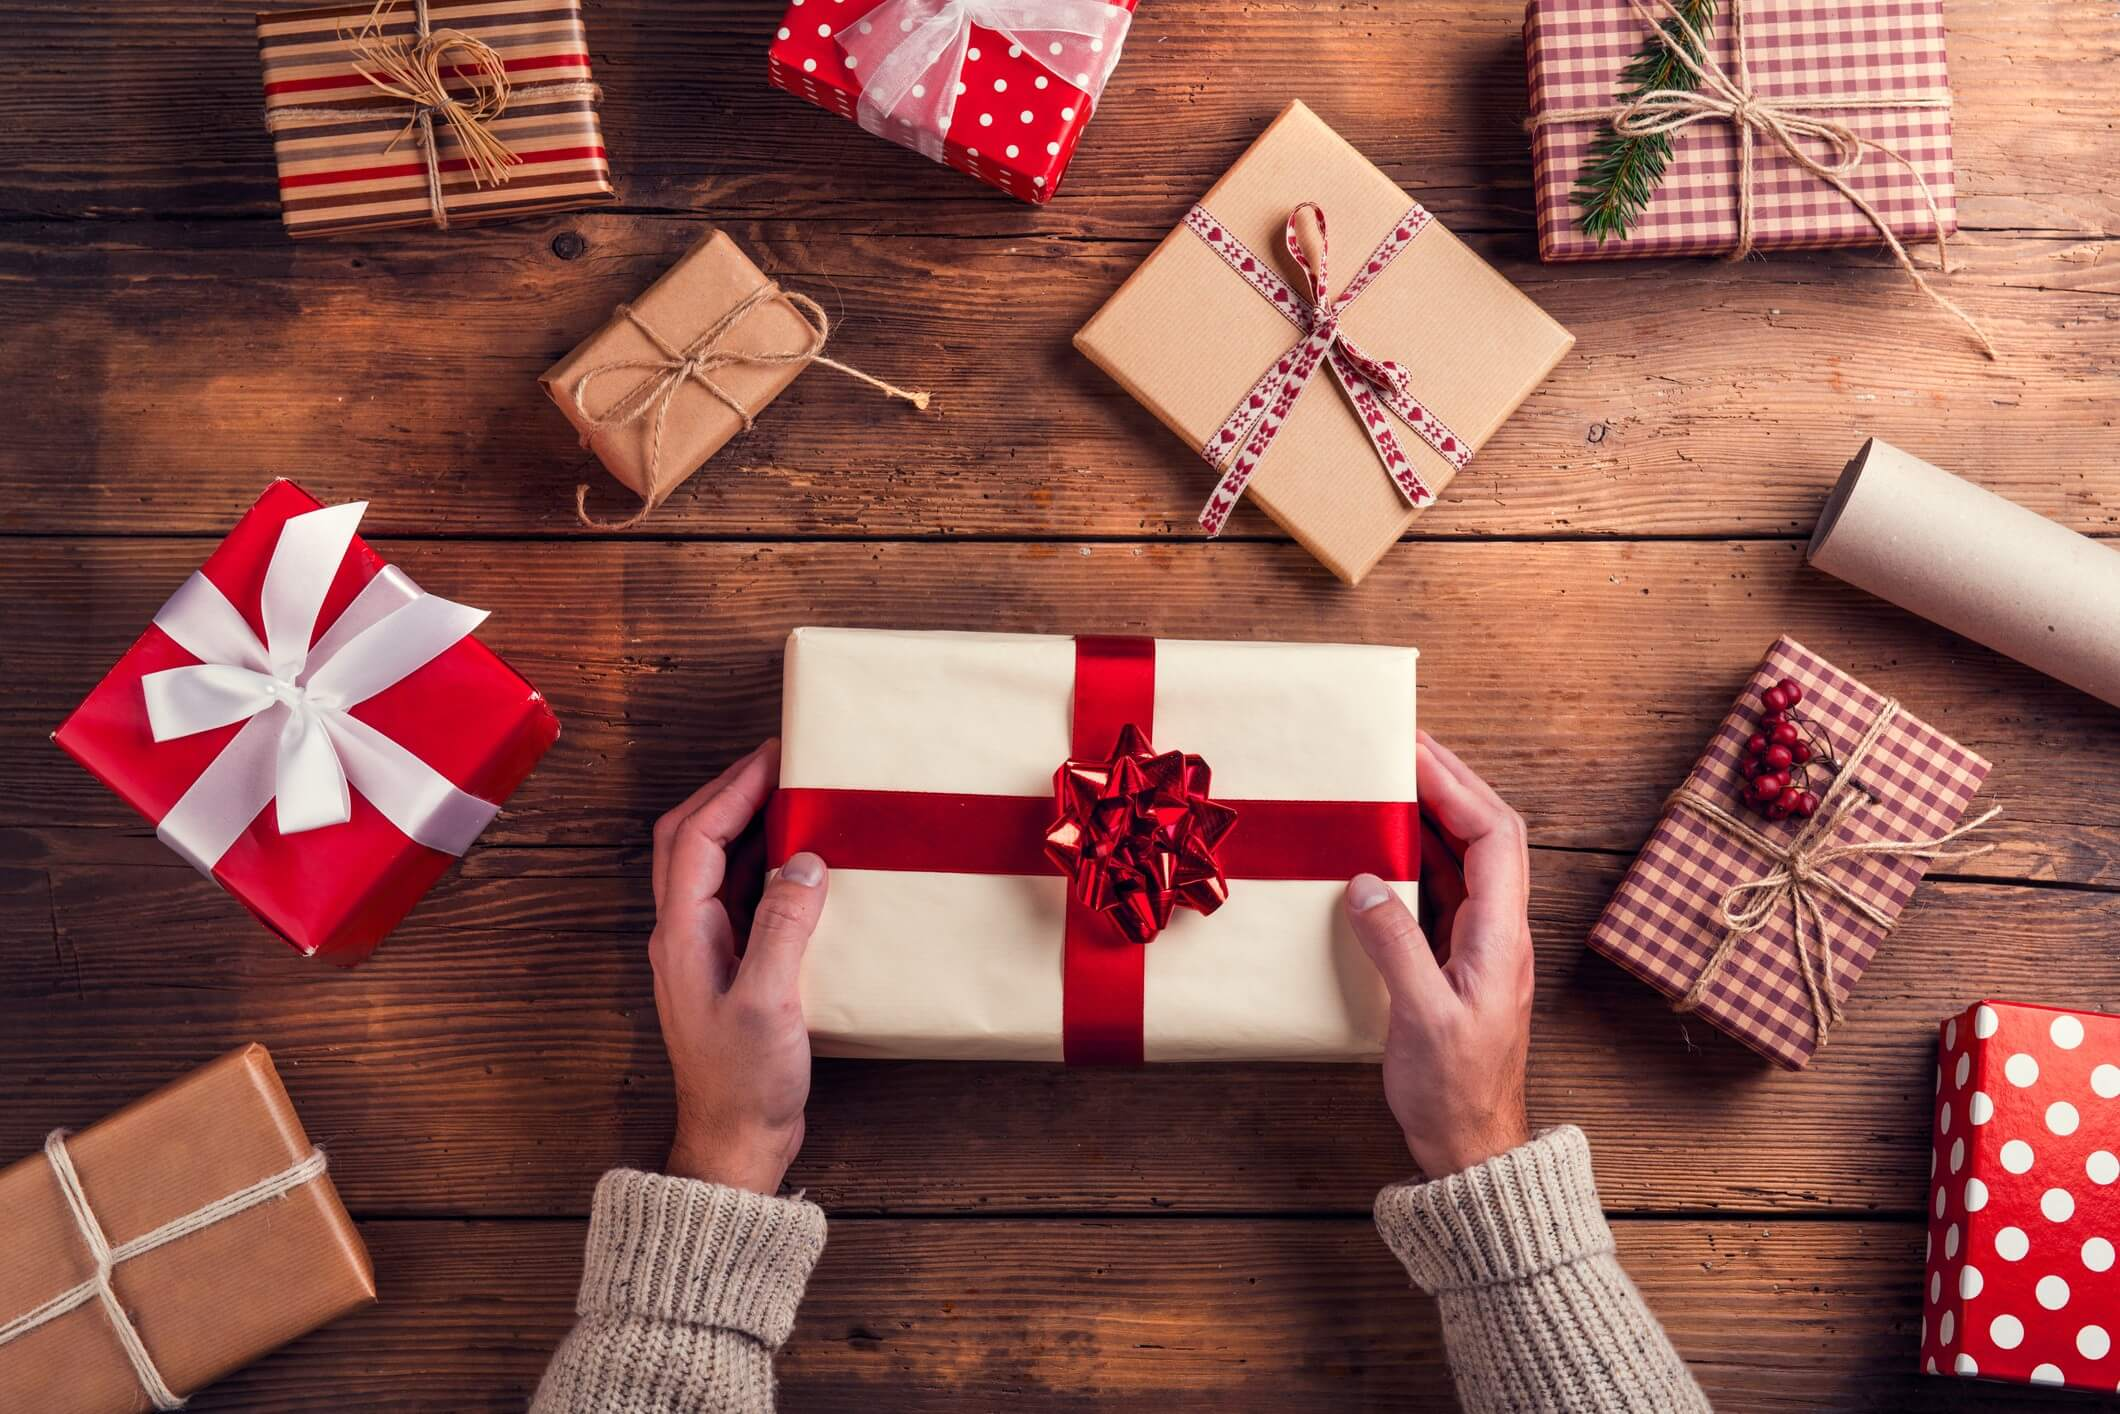 Best Christmas Gifts for Vape Users